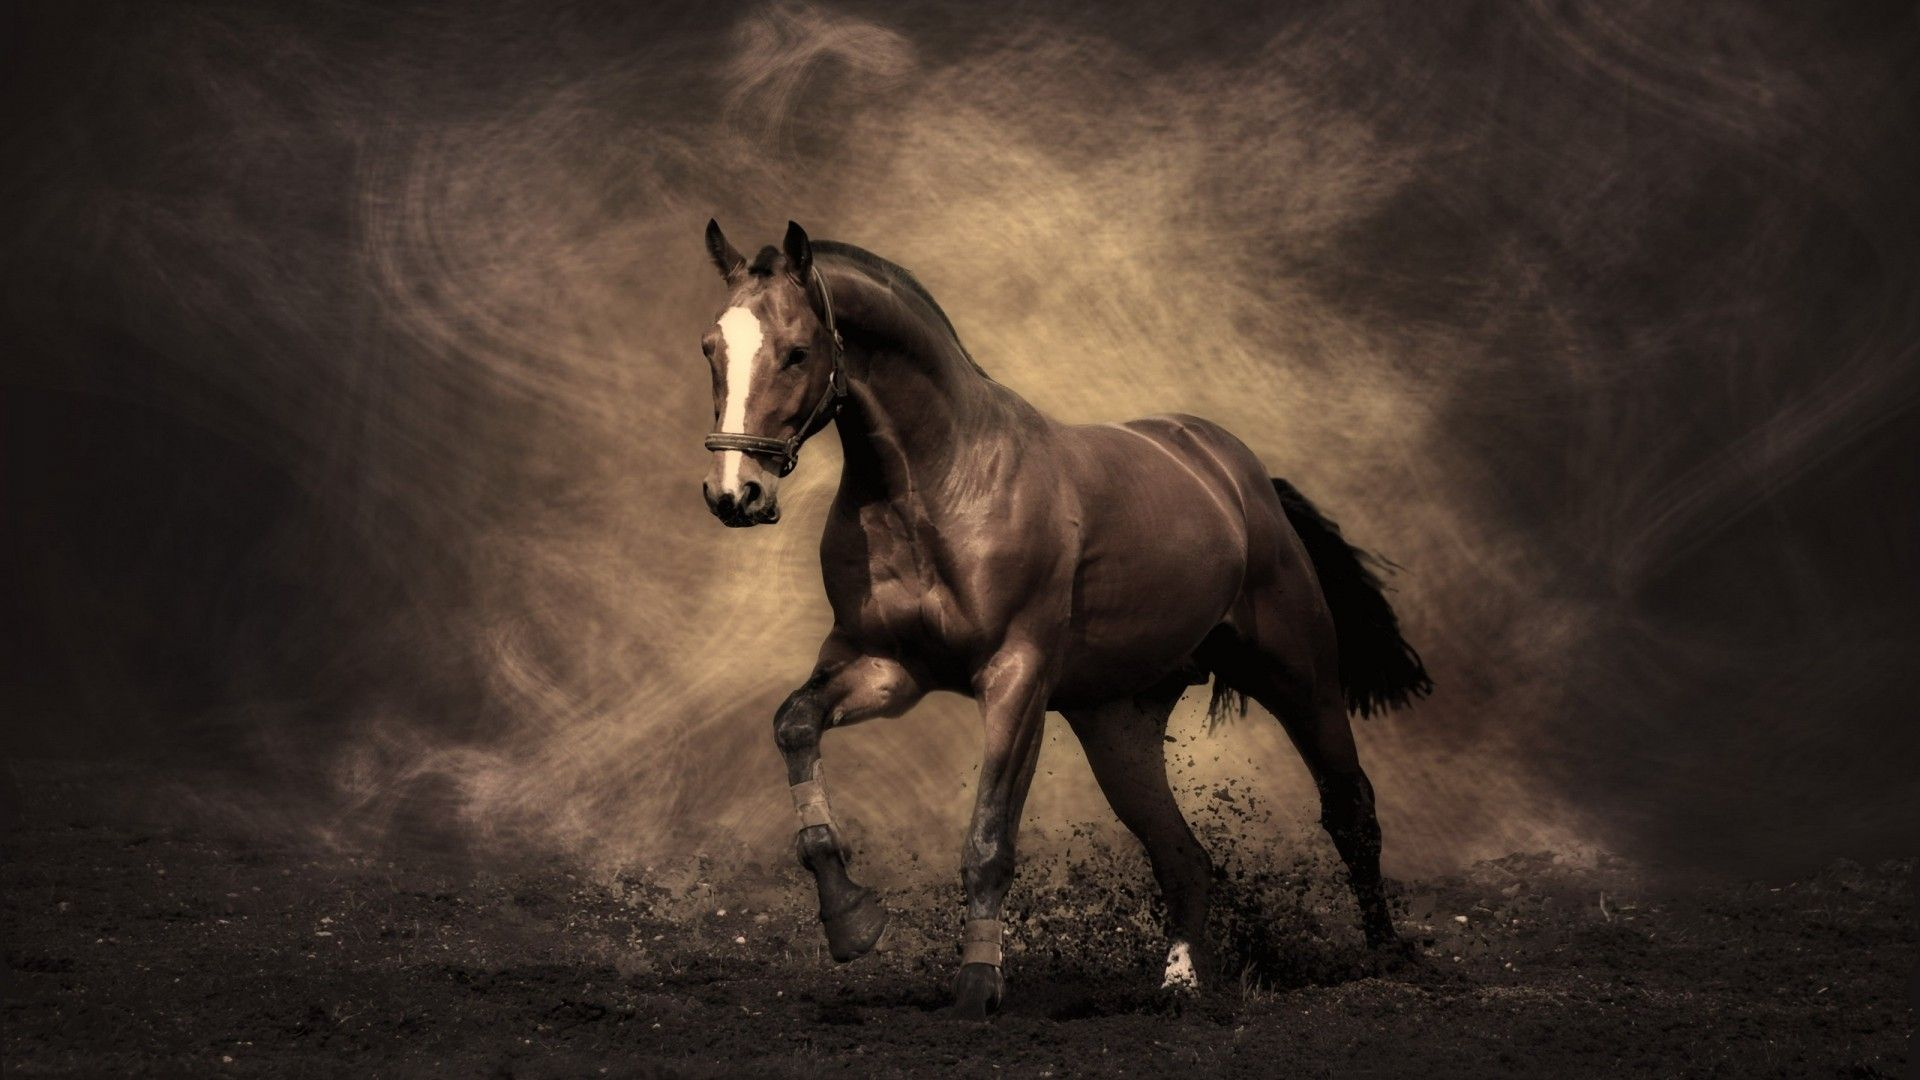 Free Download Horse Backgrounds For Your Computer 1920x1080 For